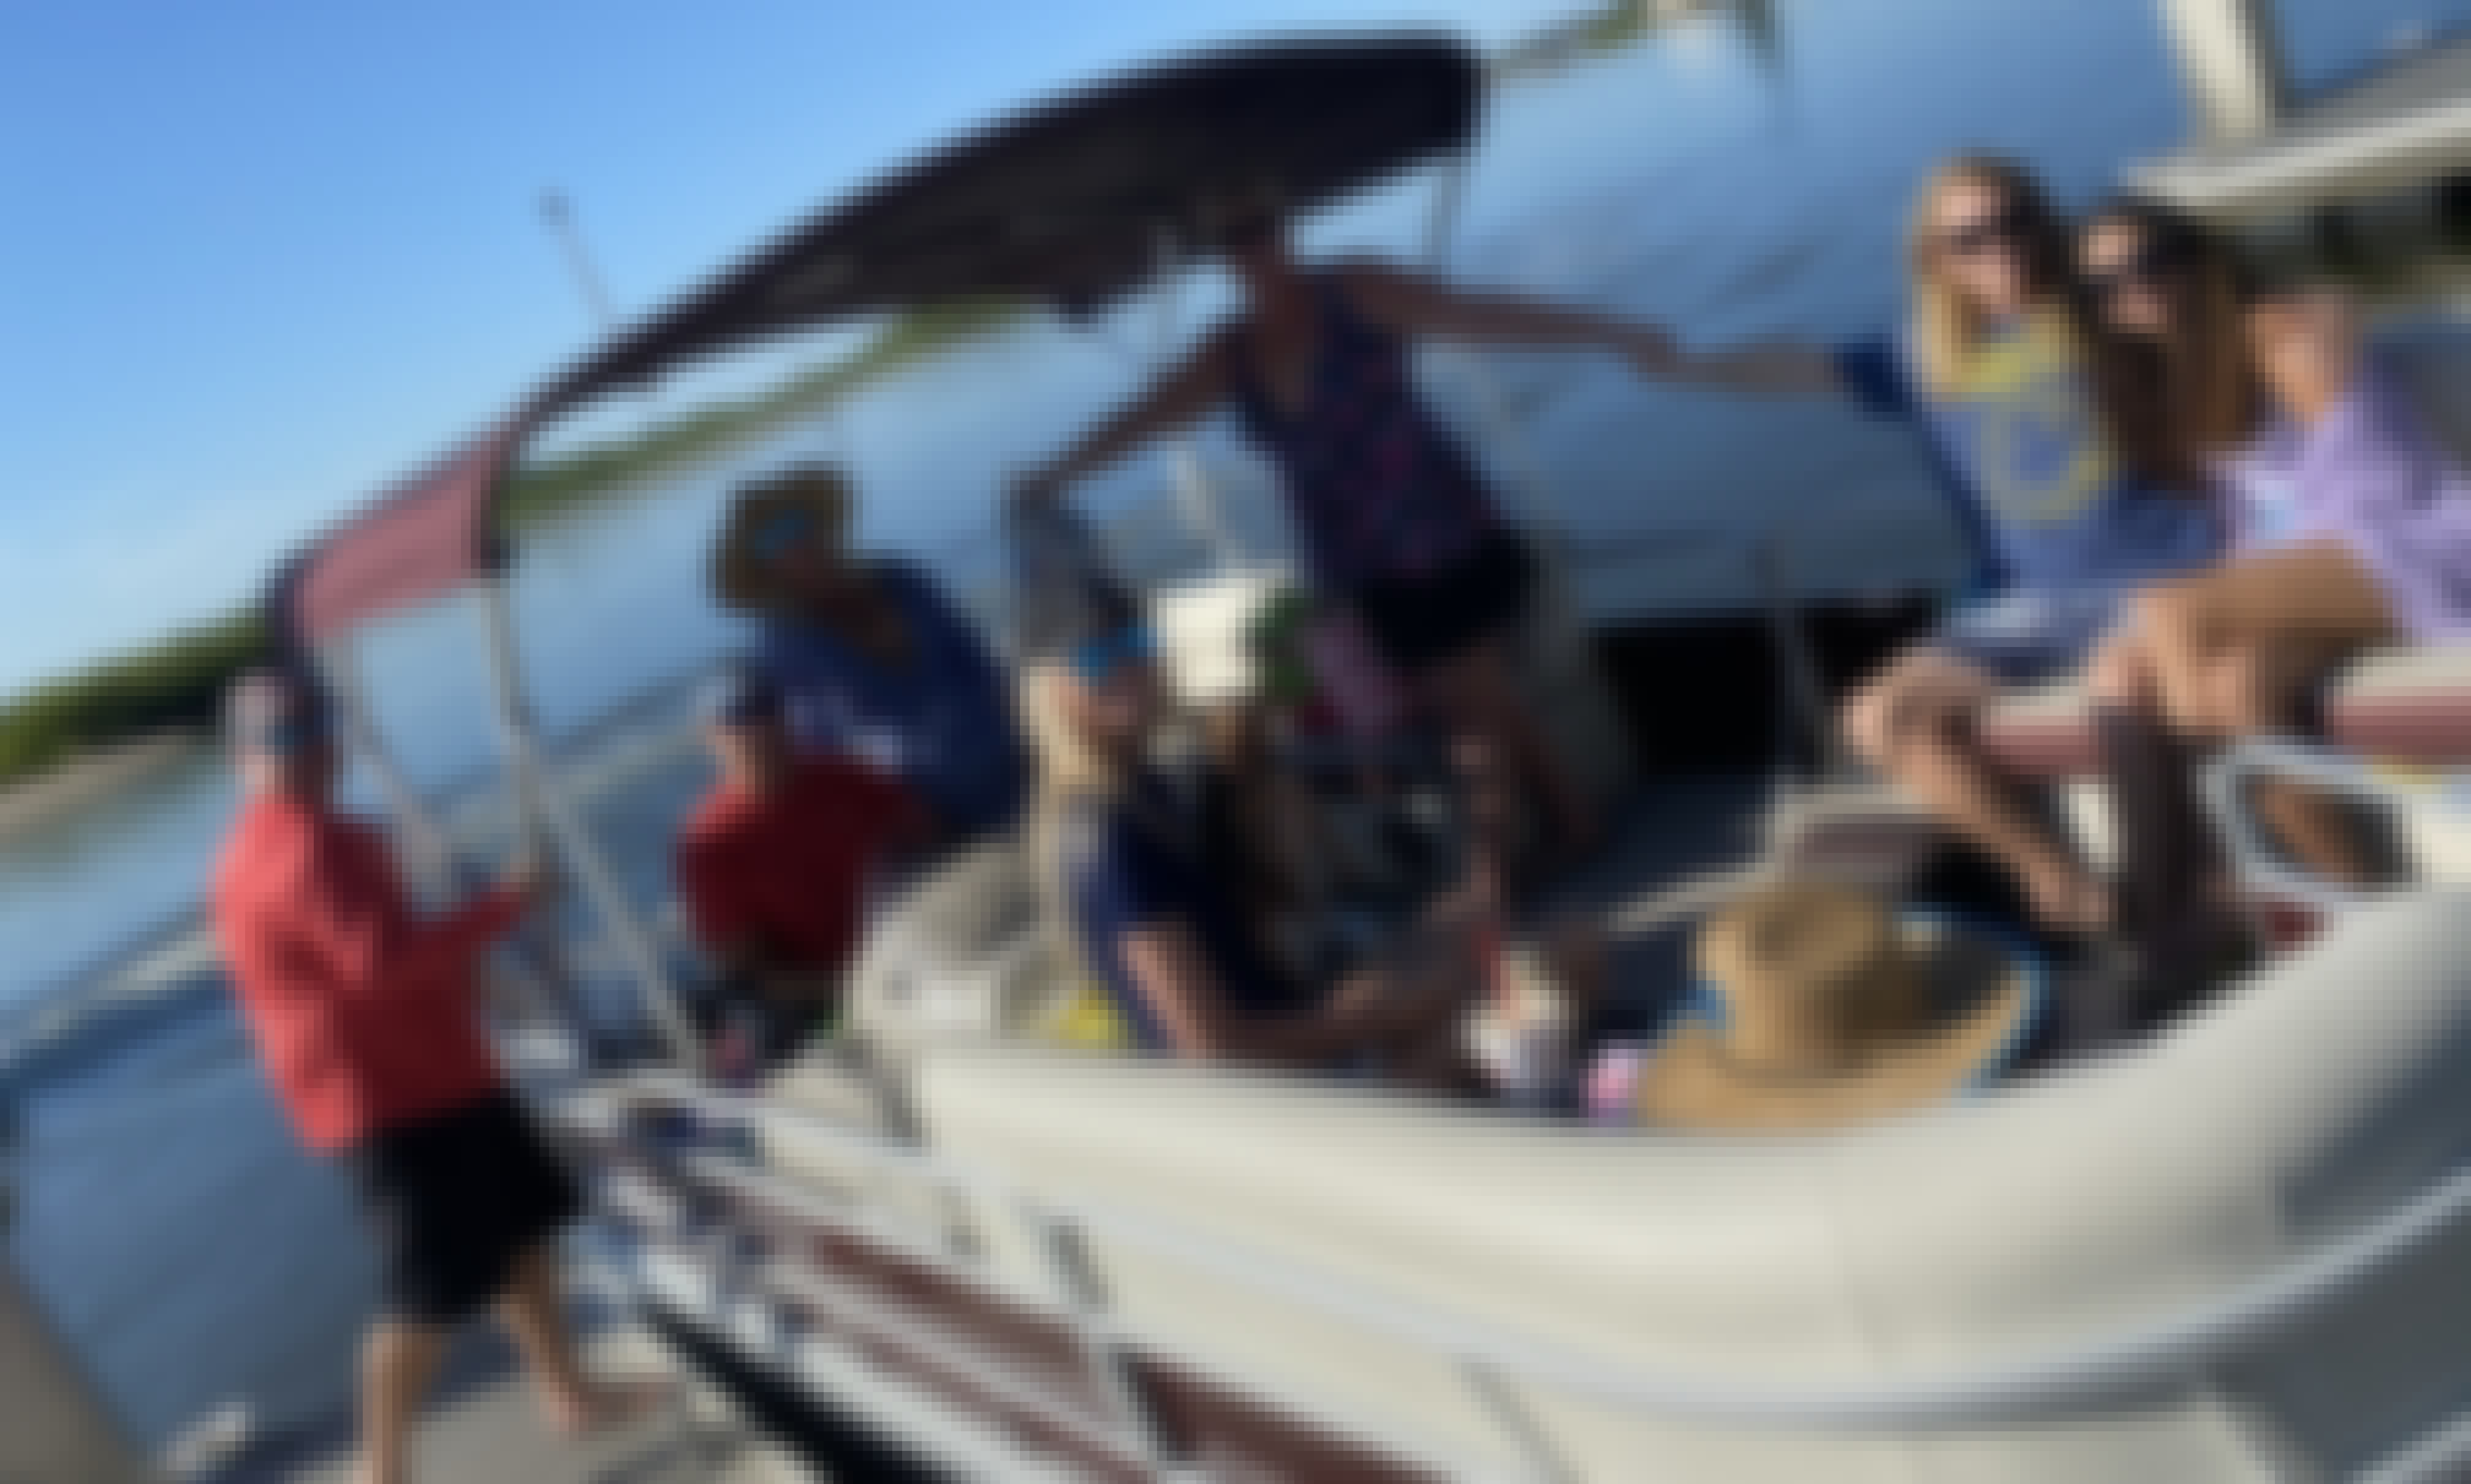 18 ft Pontoon Boat for up to 10 Persons in Daytona Beach